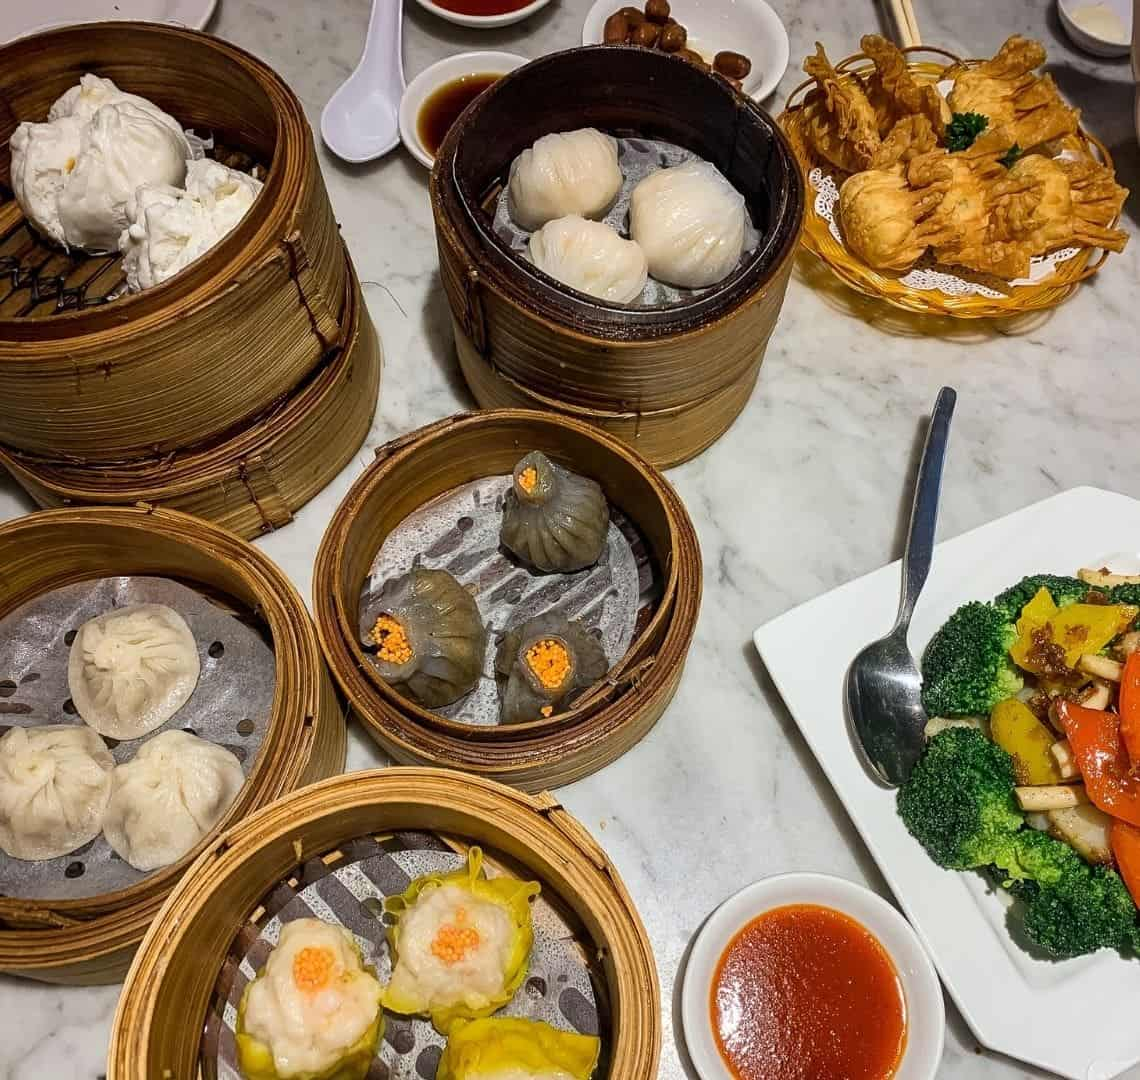 A selection of dumplings in bamboo steamers on a marble tabletop. On the bottom right is also a selection of colourful stir fried vegetables and at the top righter some fried wantons